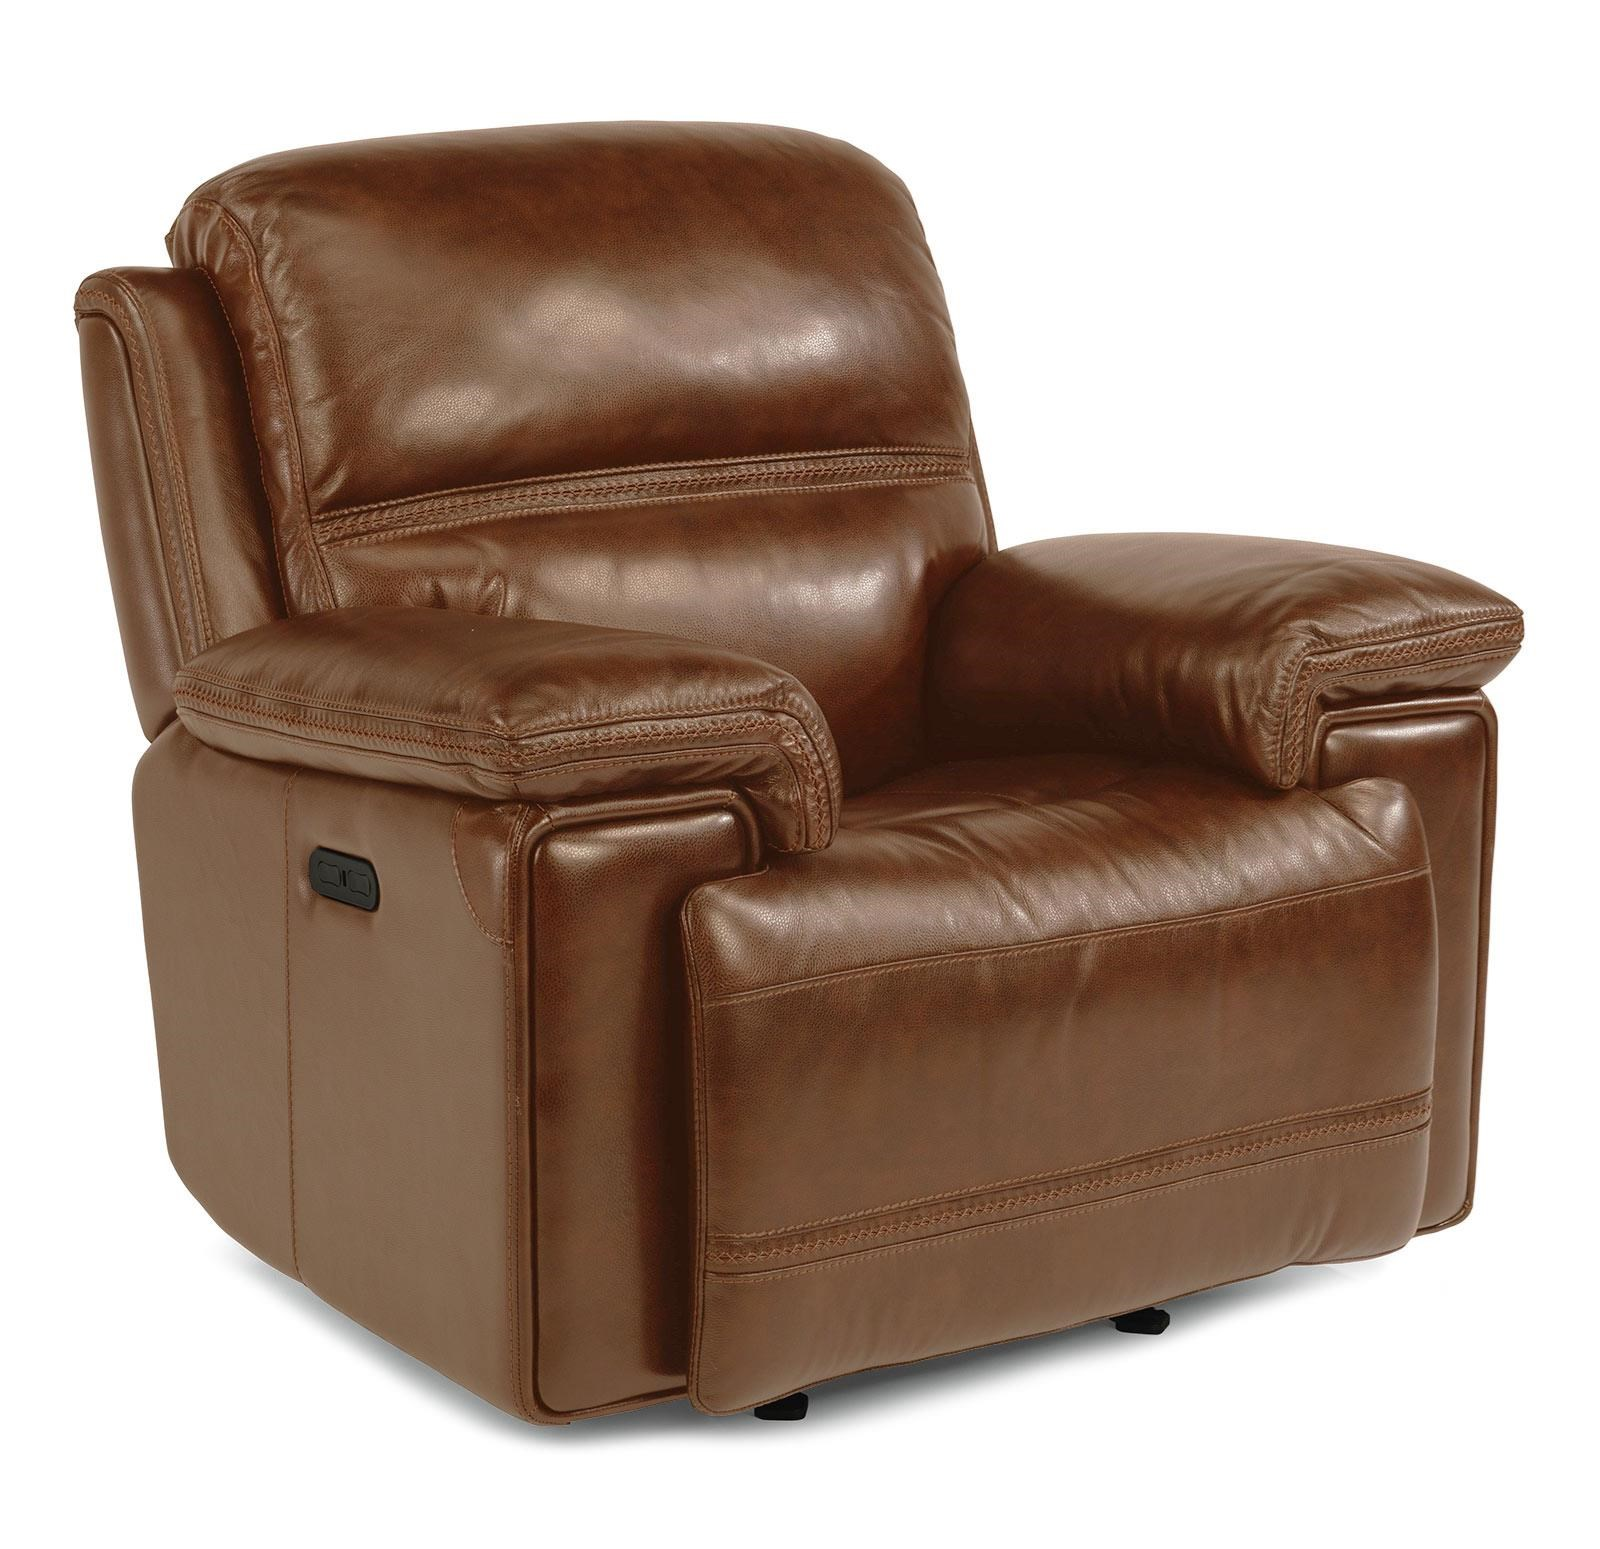 Power Glider Recliner with Power Tilt Headrest and USB Port